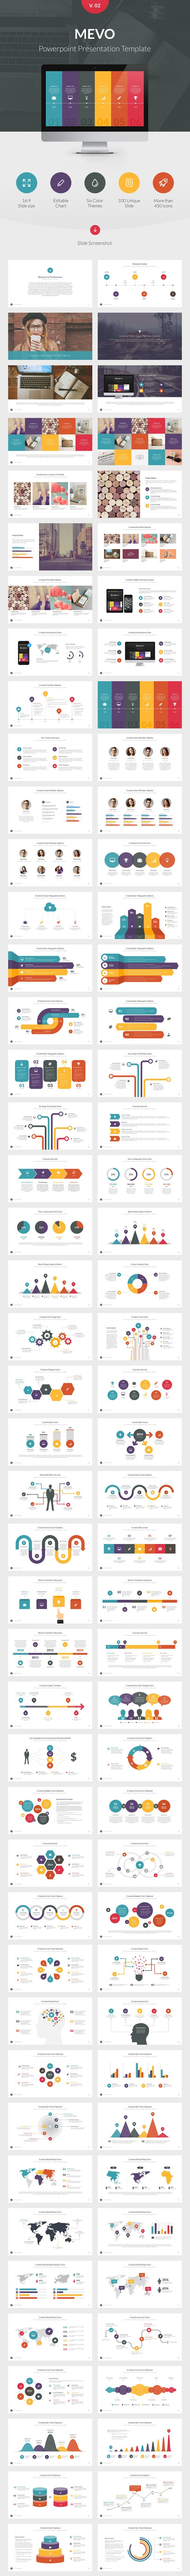 Mevo Powerpoint Presentation Template - PowerPoint Templates Presentation Templates